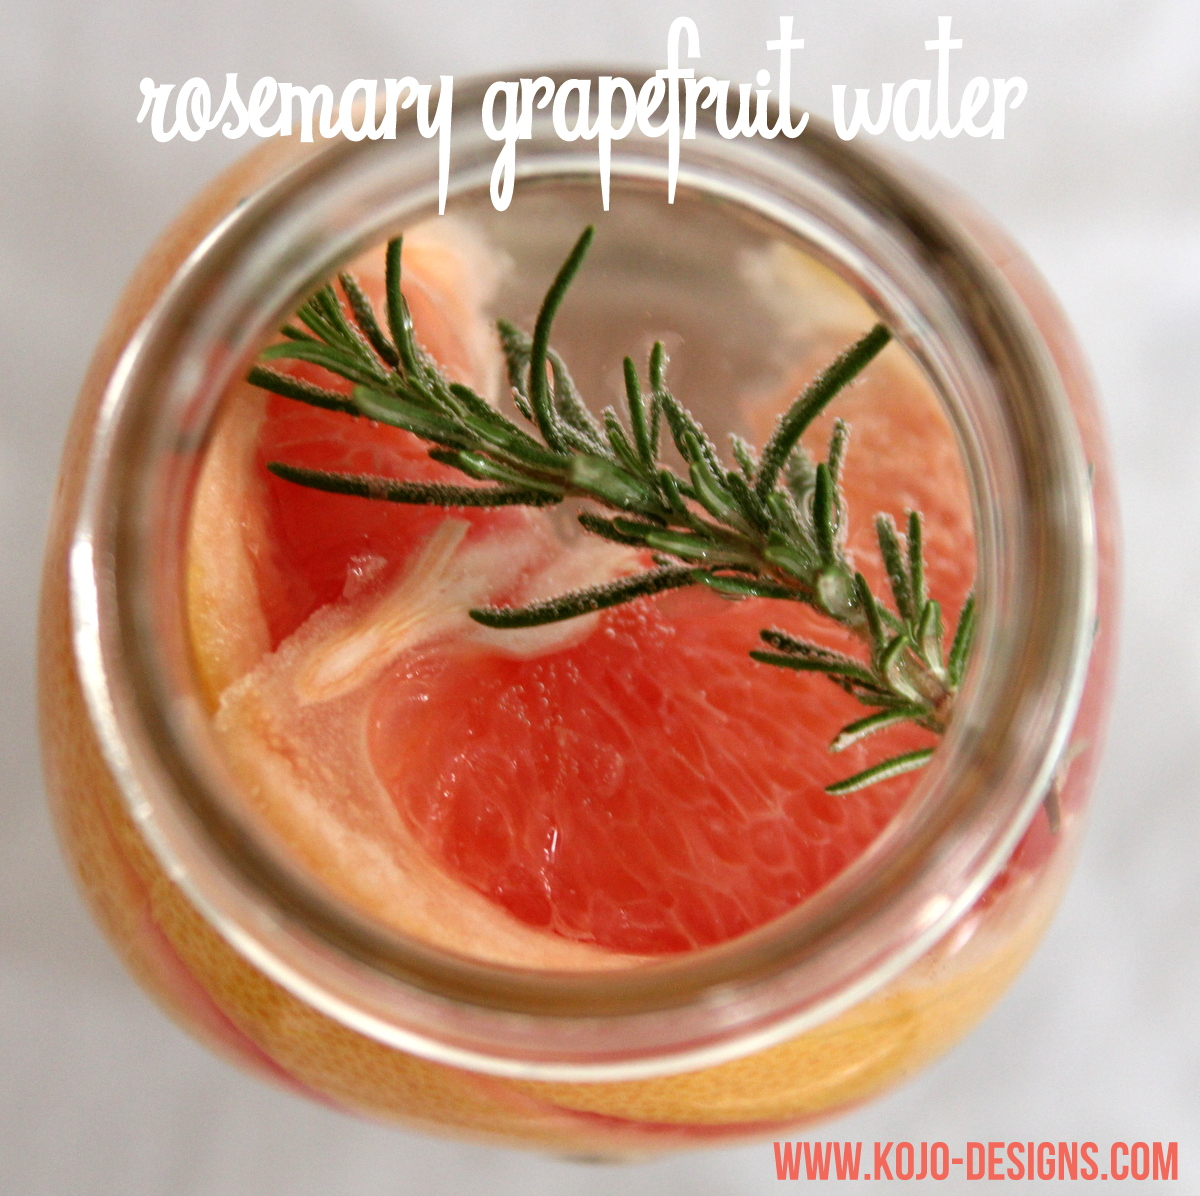 rosemary grapefruit detox water recipe